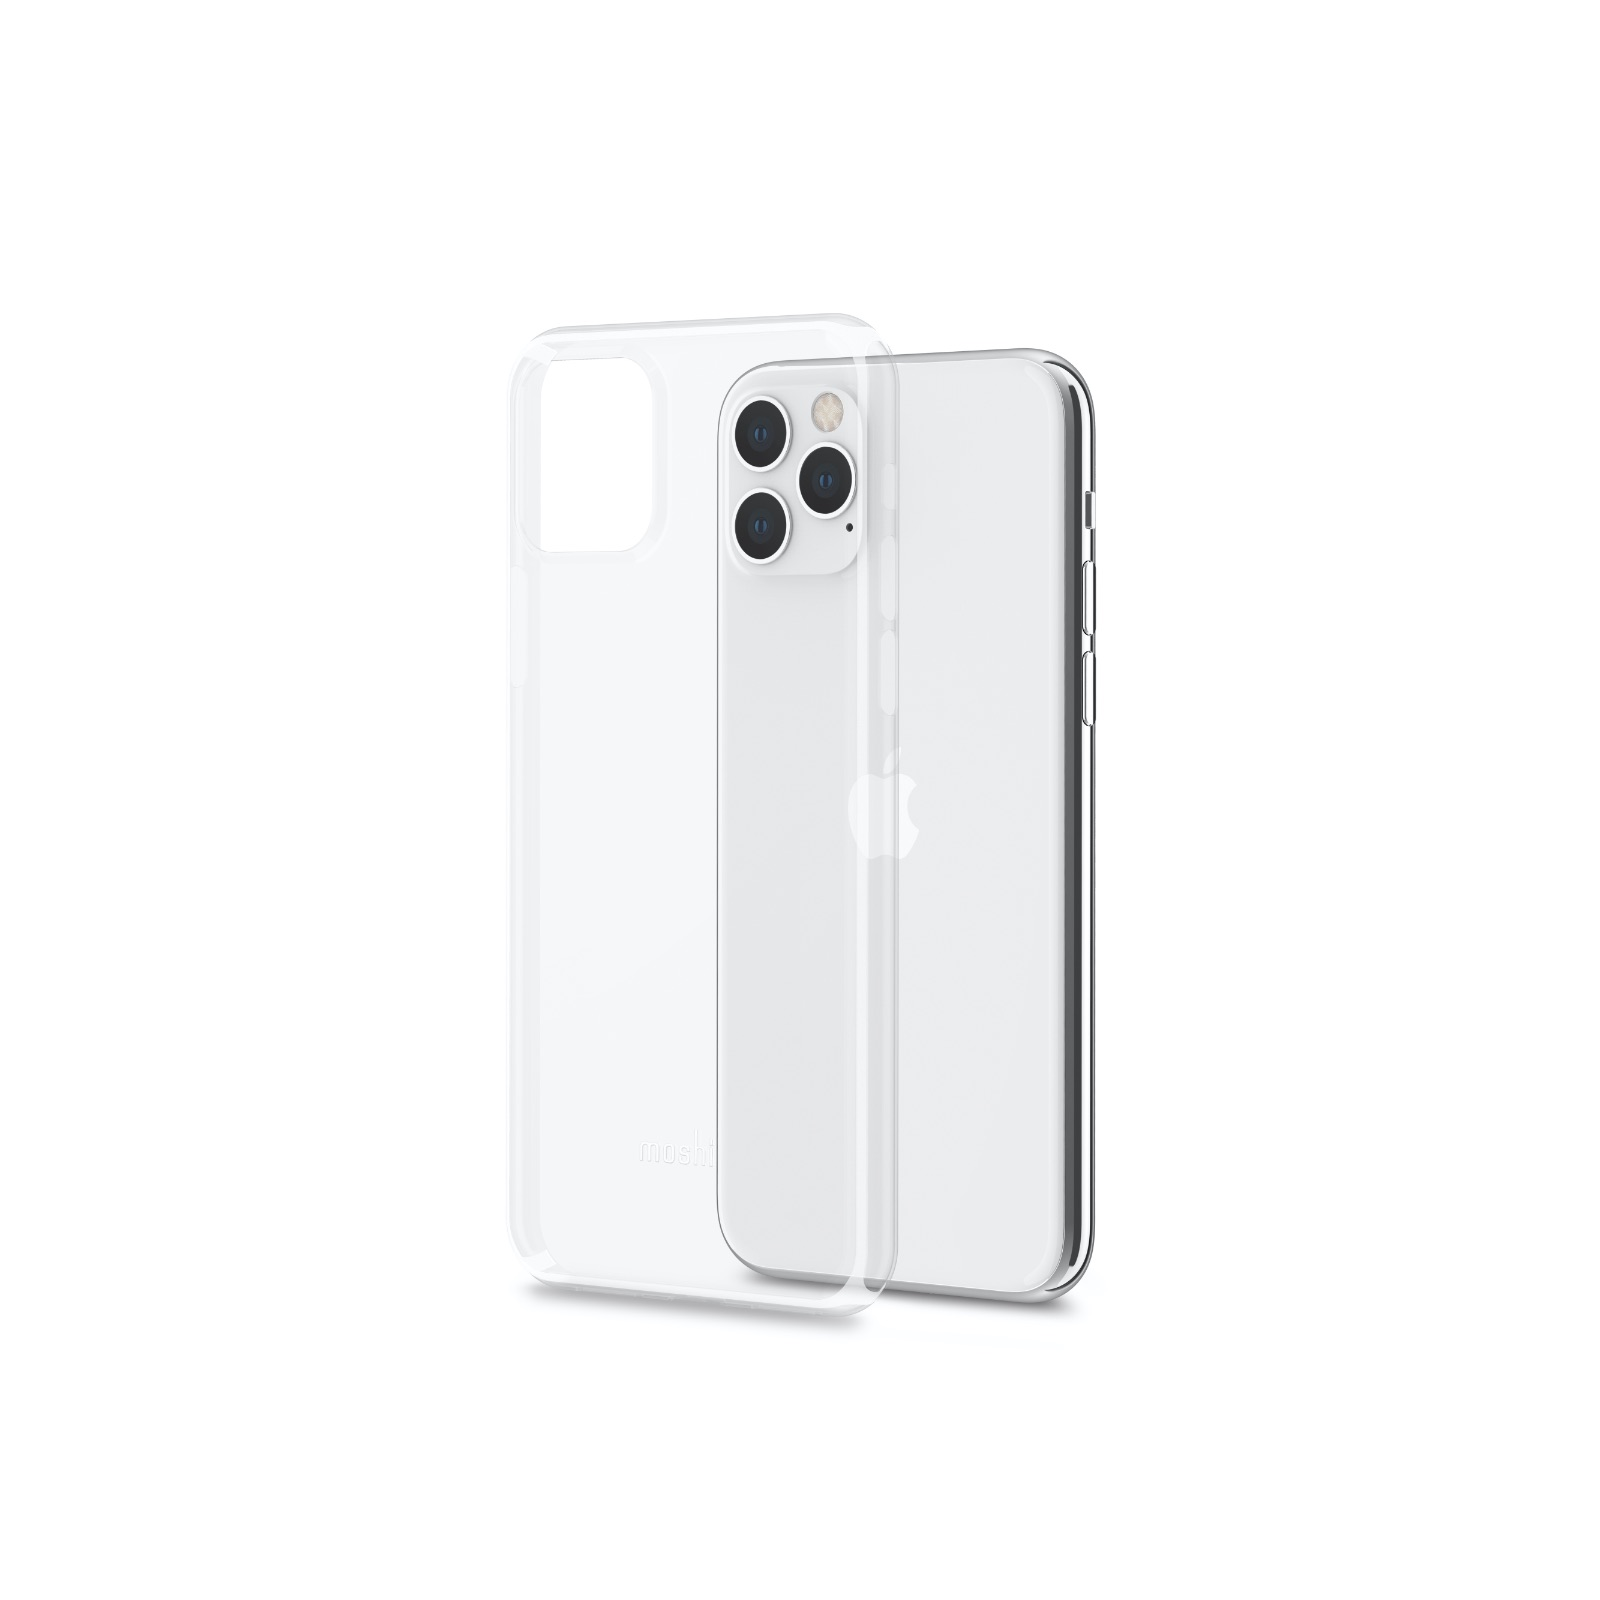 SuperSkin Thin Case-image